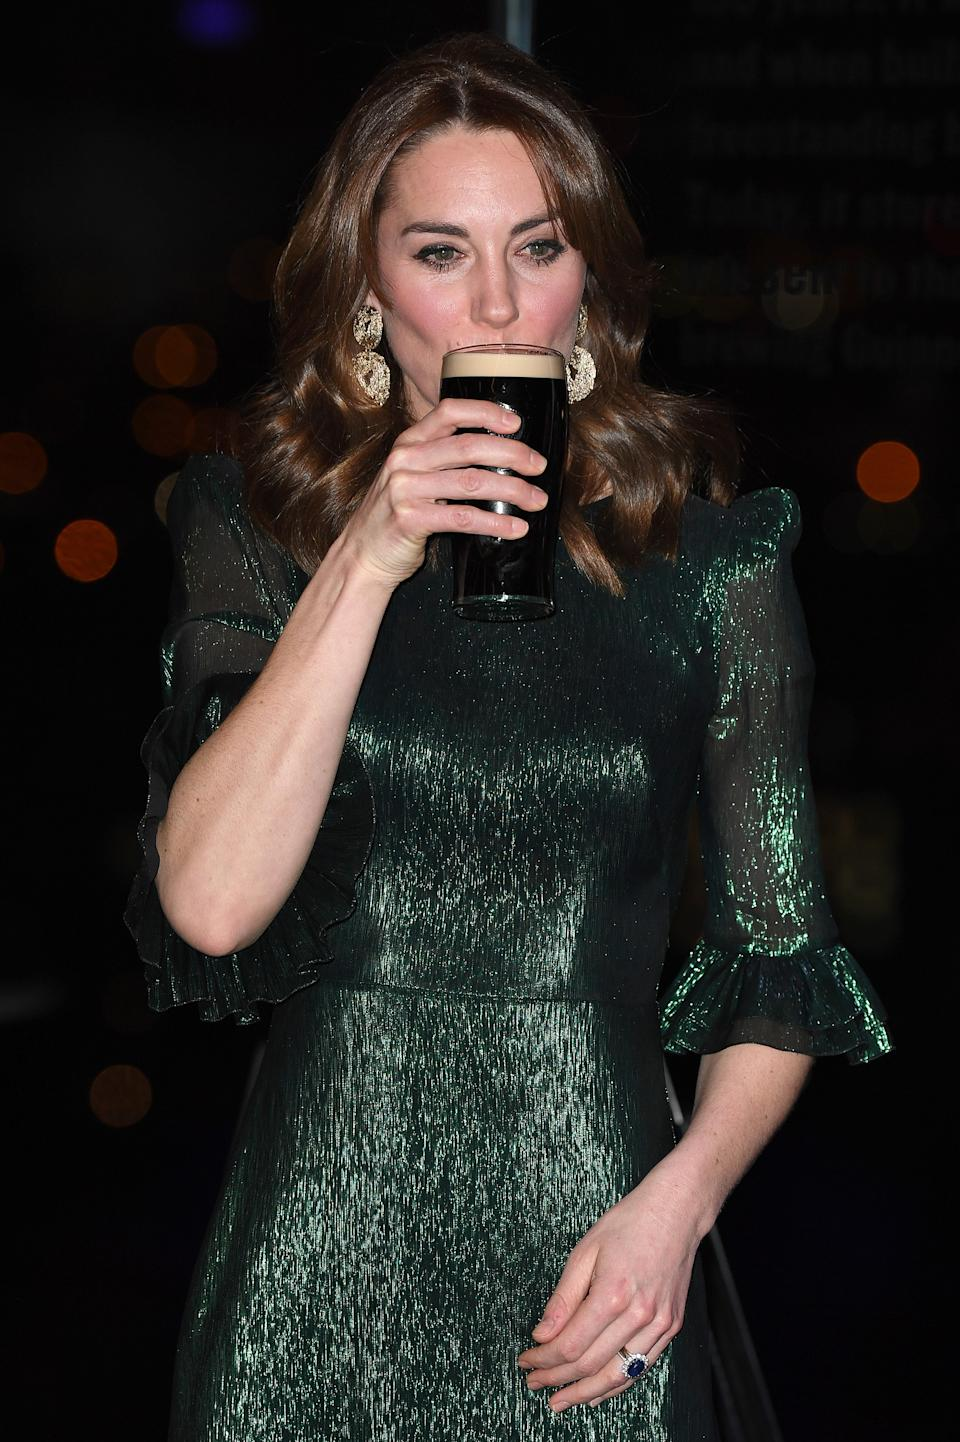 The Duchess of Cambridge drinks a Guinness at a reception hosted by the British Ambassador to Ireland. (Getty Images)